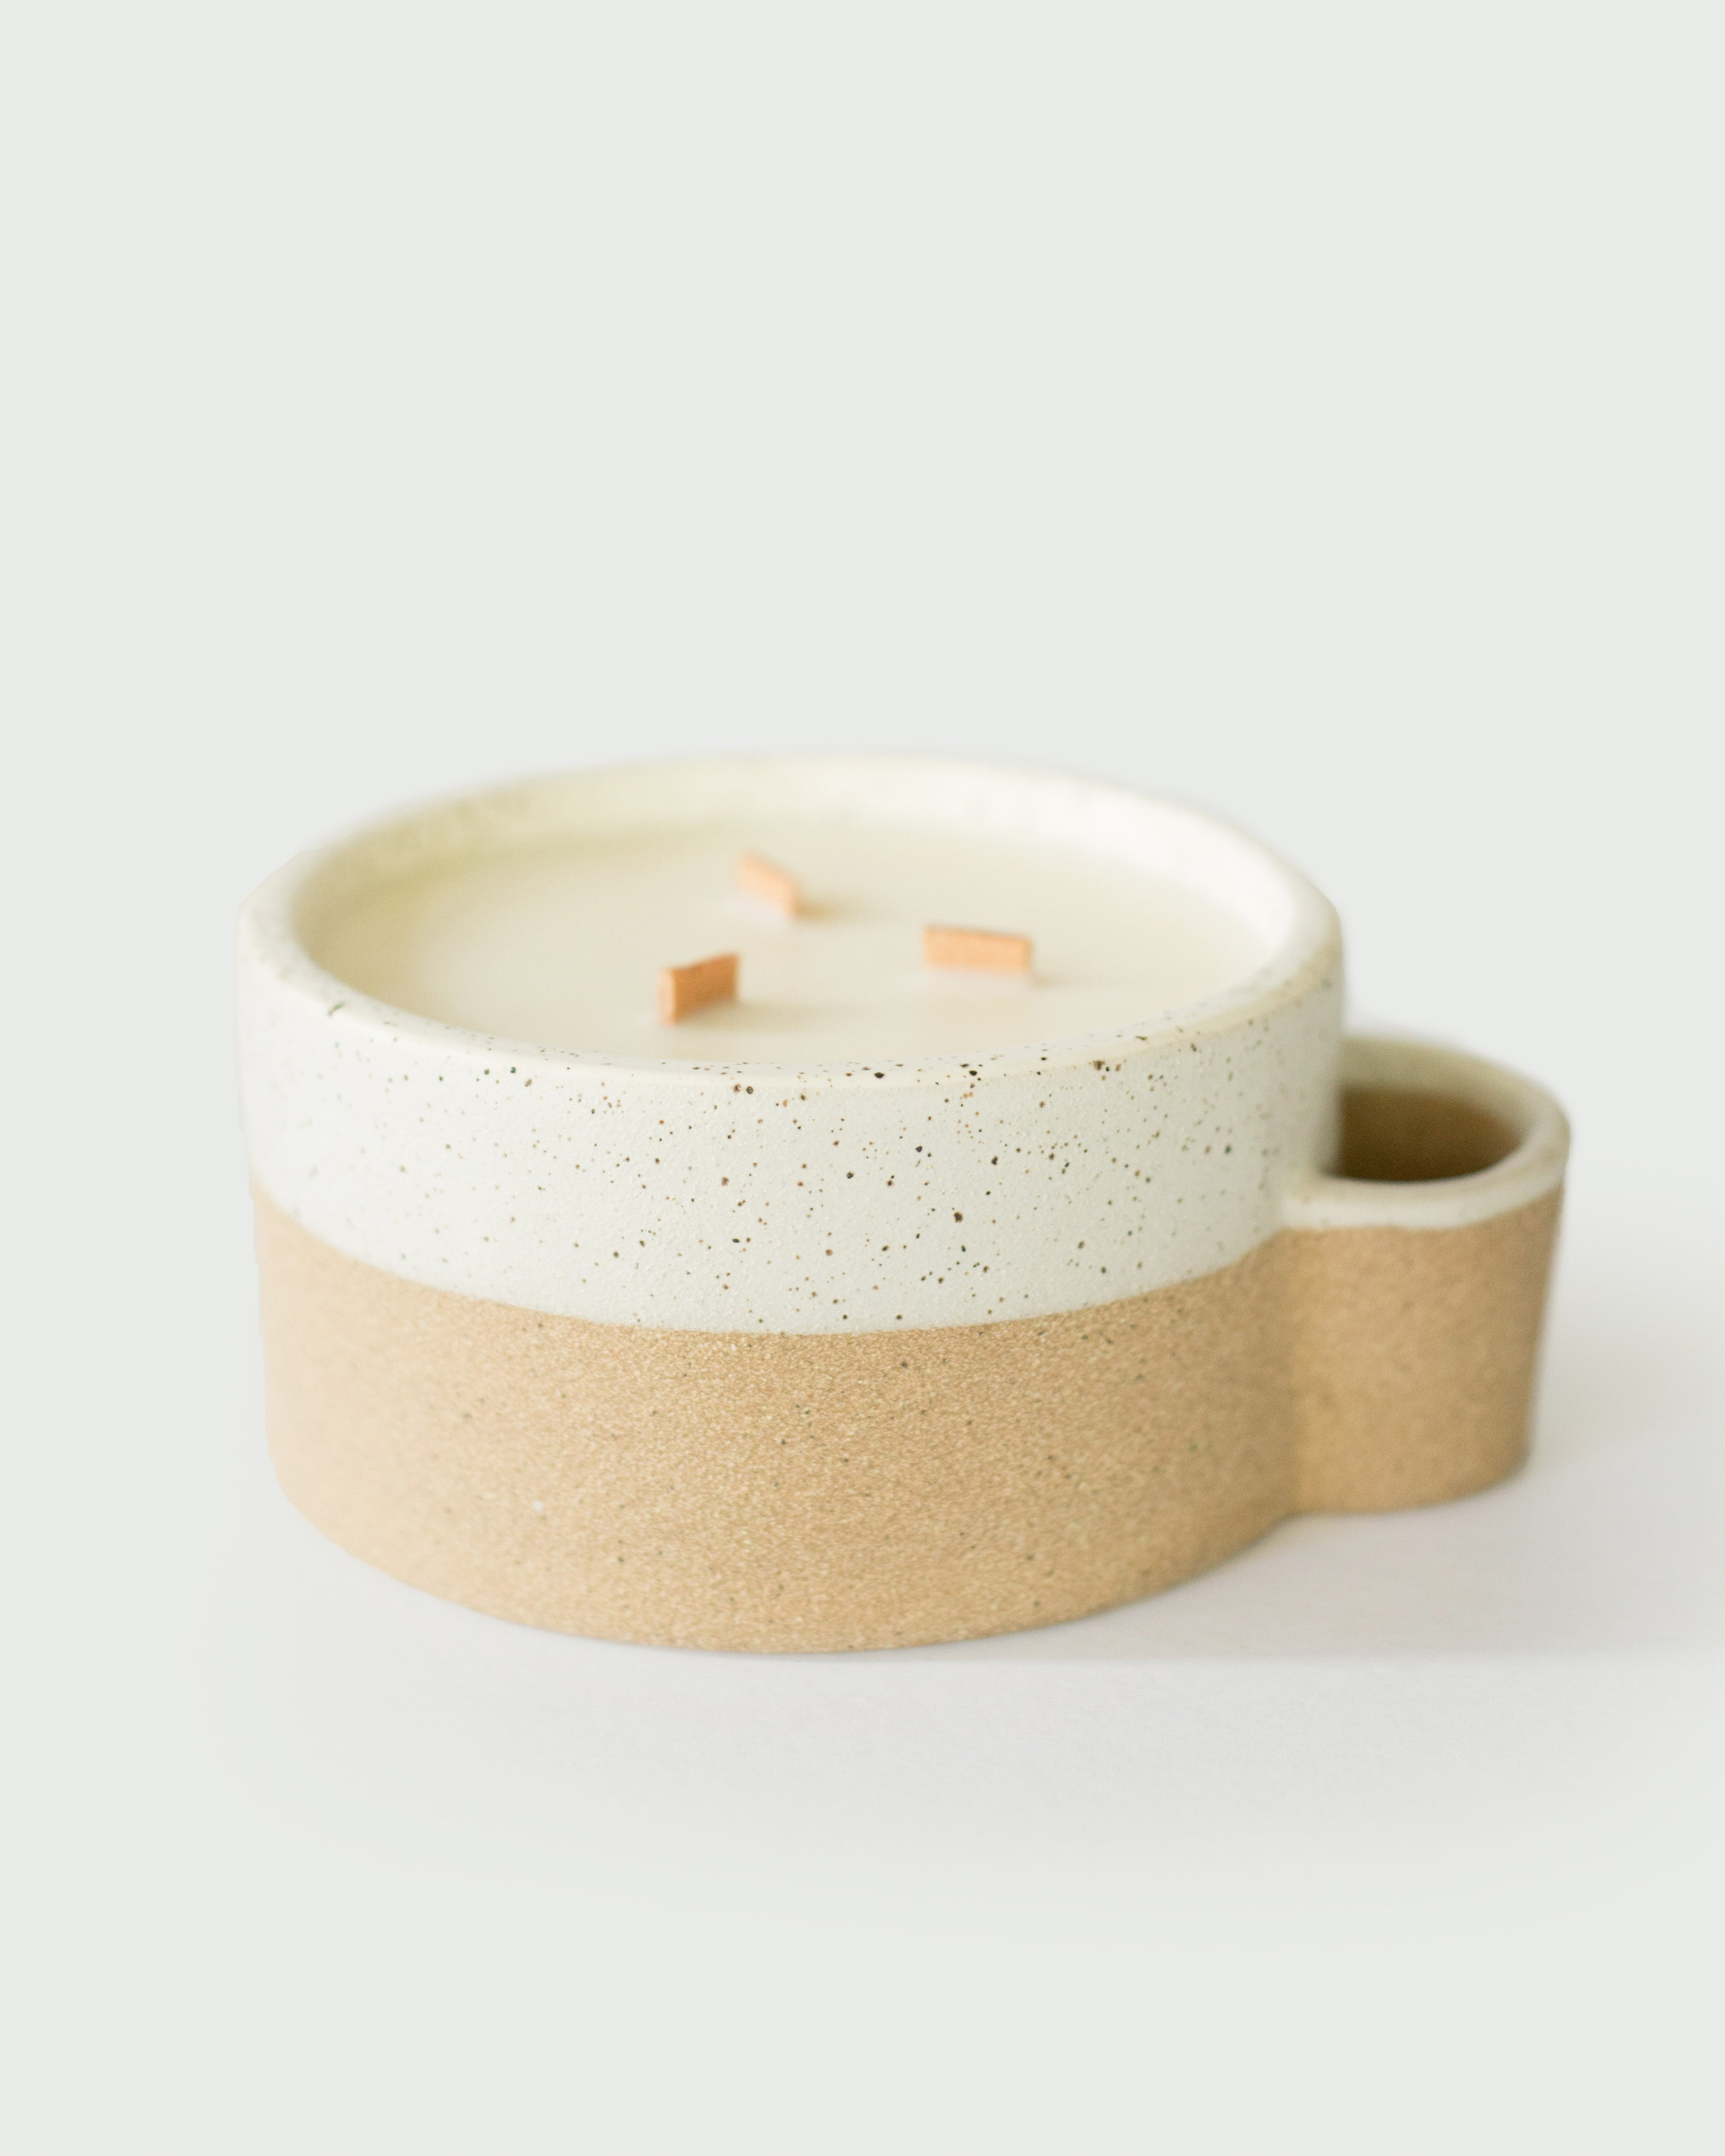 Soy Candle in a Ceramic Container (20oz)